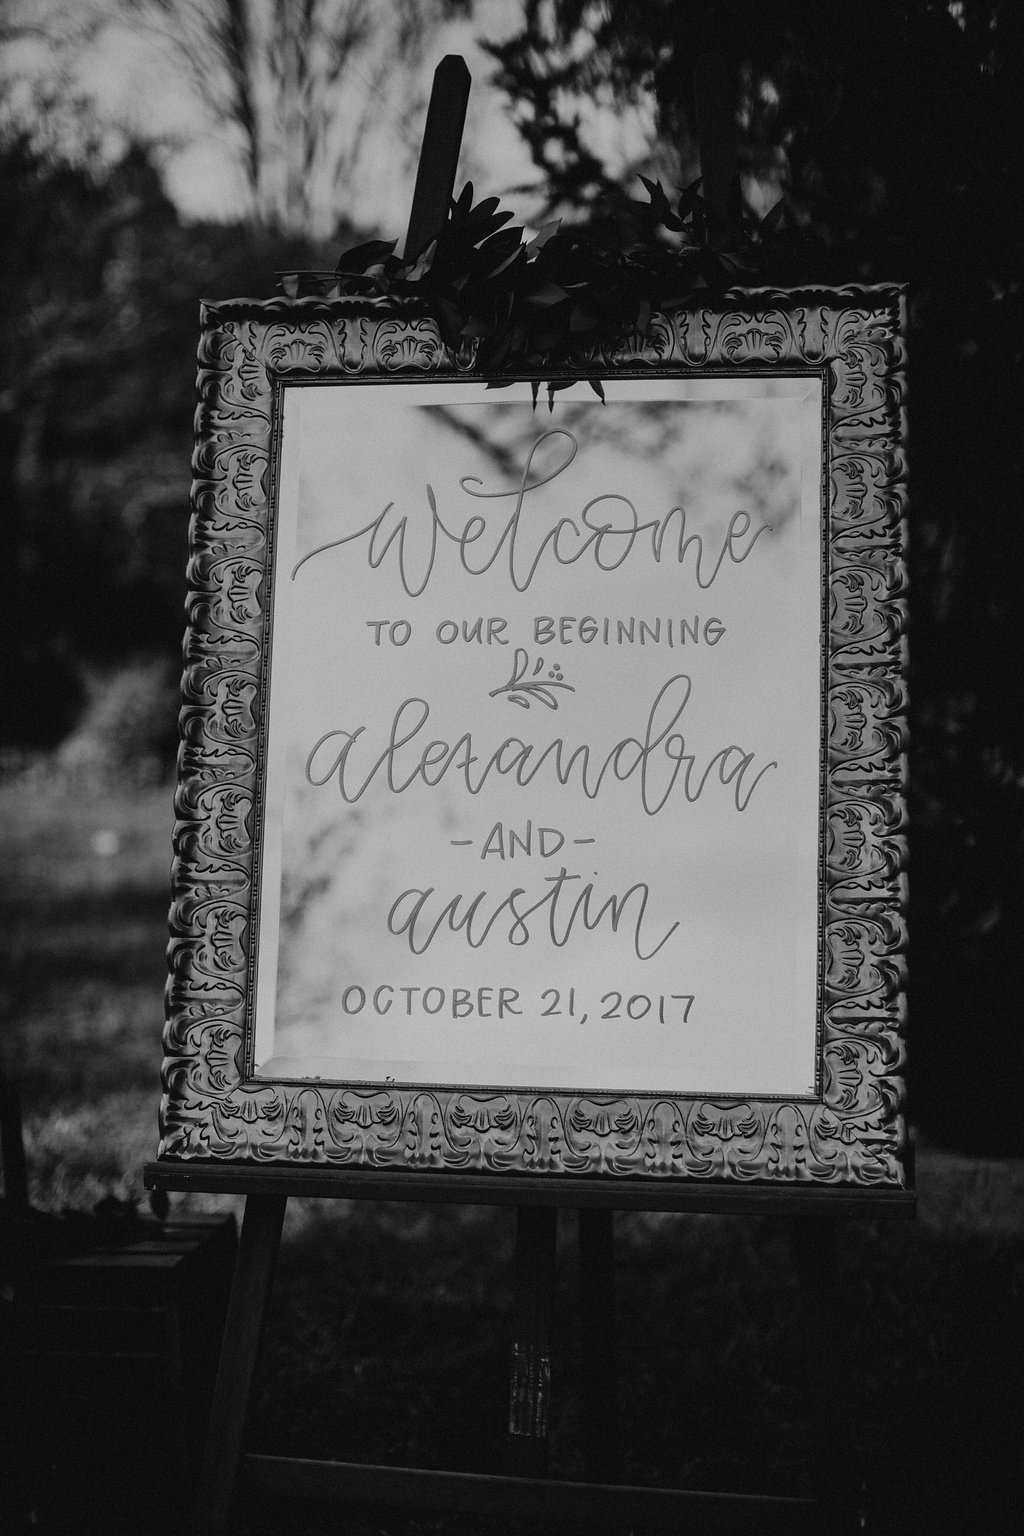 Engaged-Asheville-Joy-Unscripted-Wedding-Calligrapher-Taylor-Heery-Photography-4.jpg